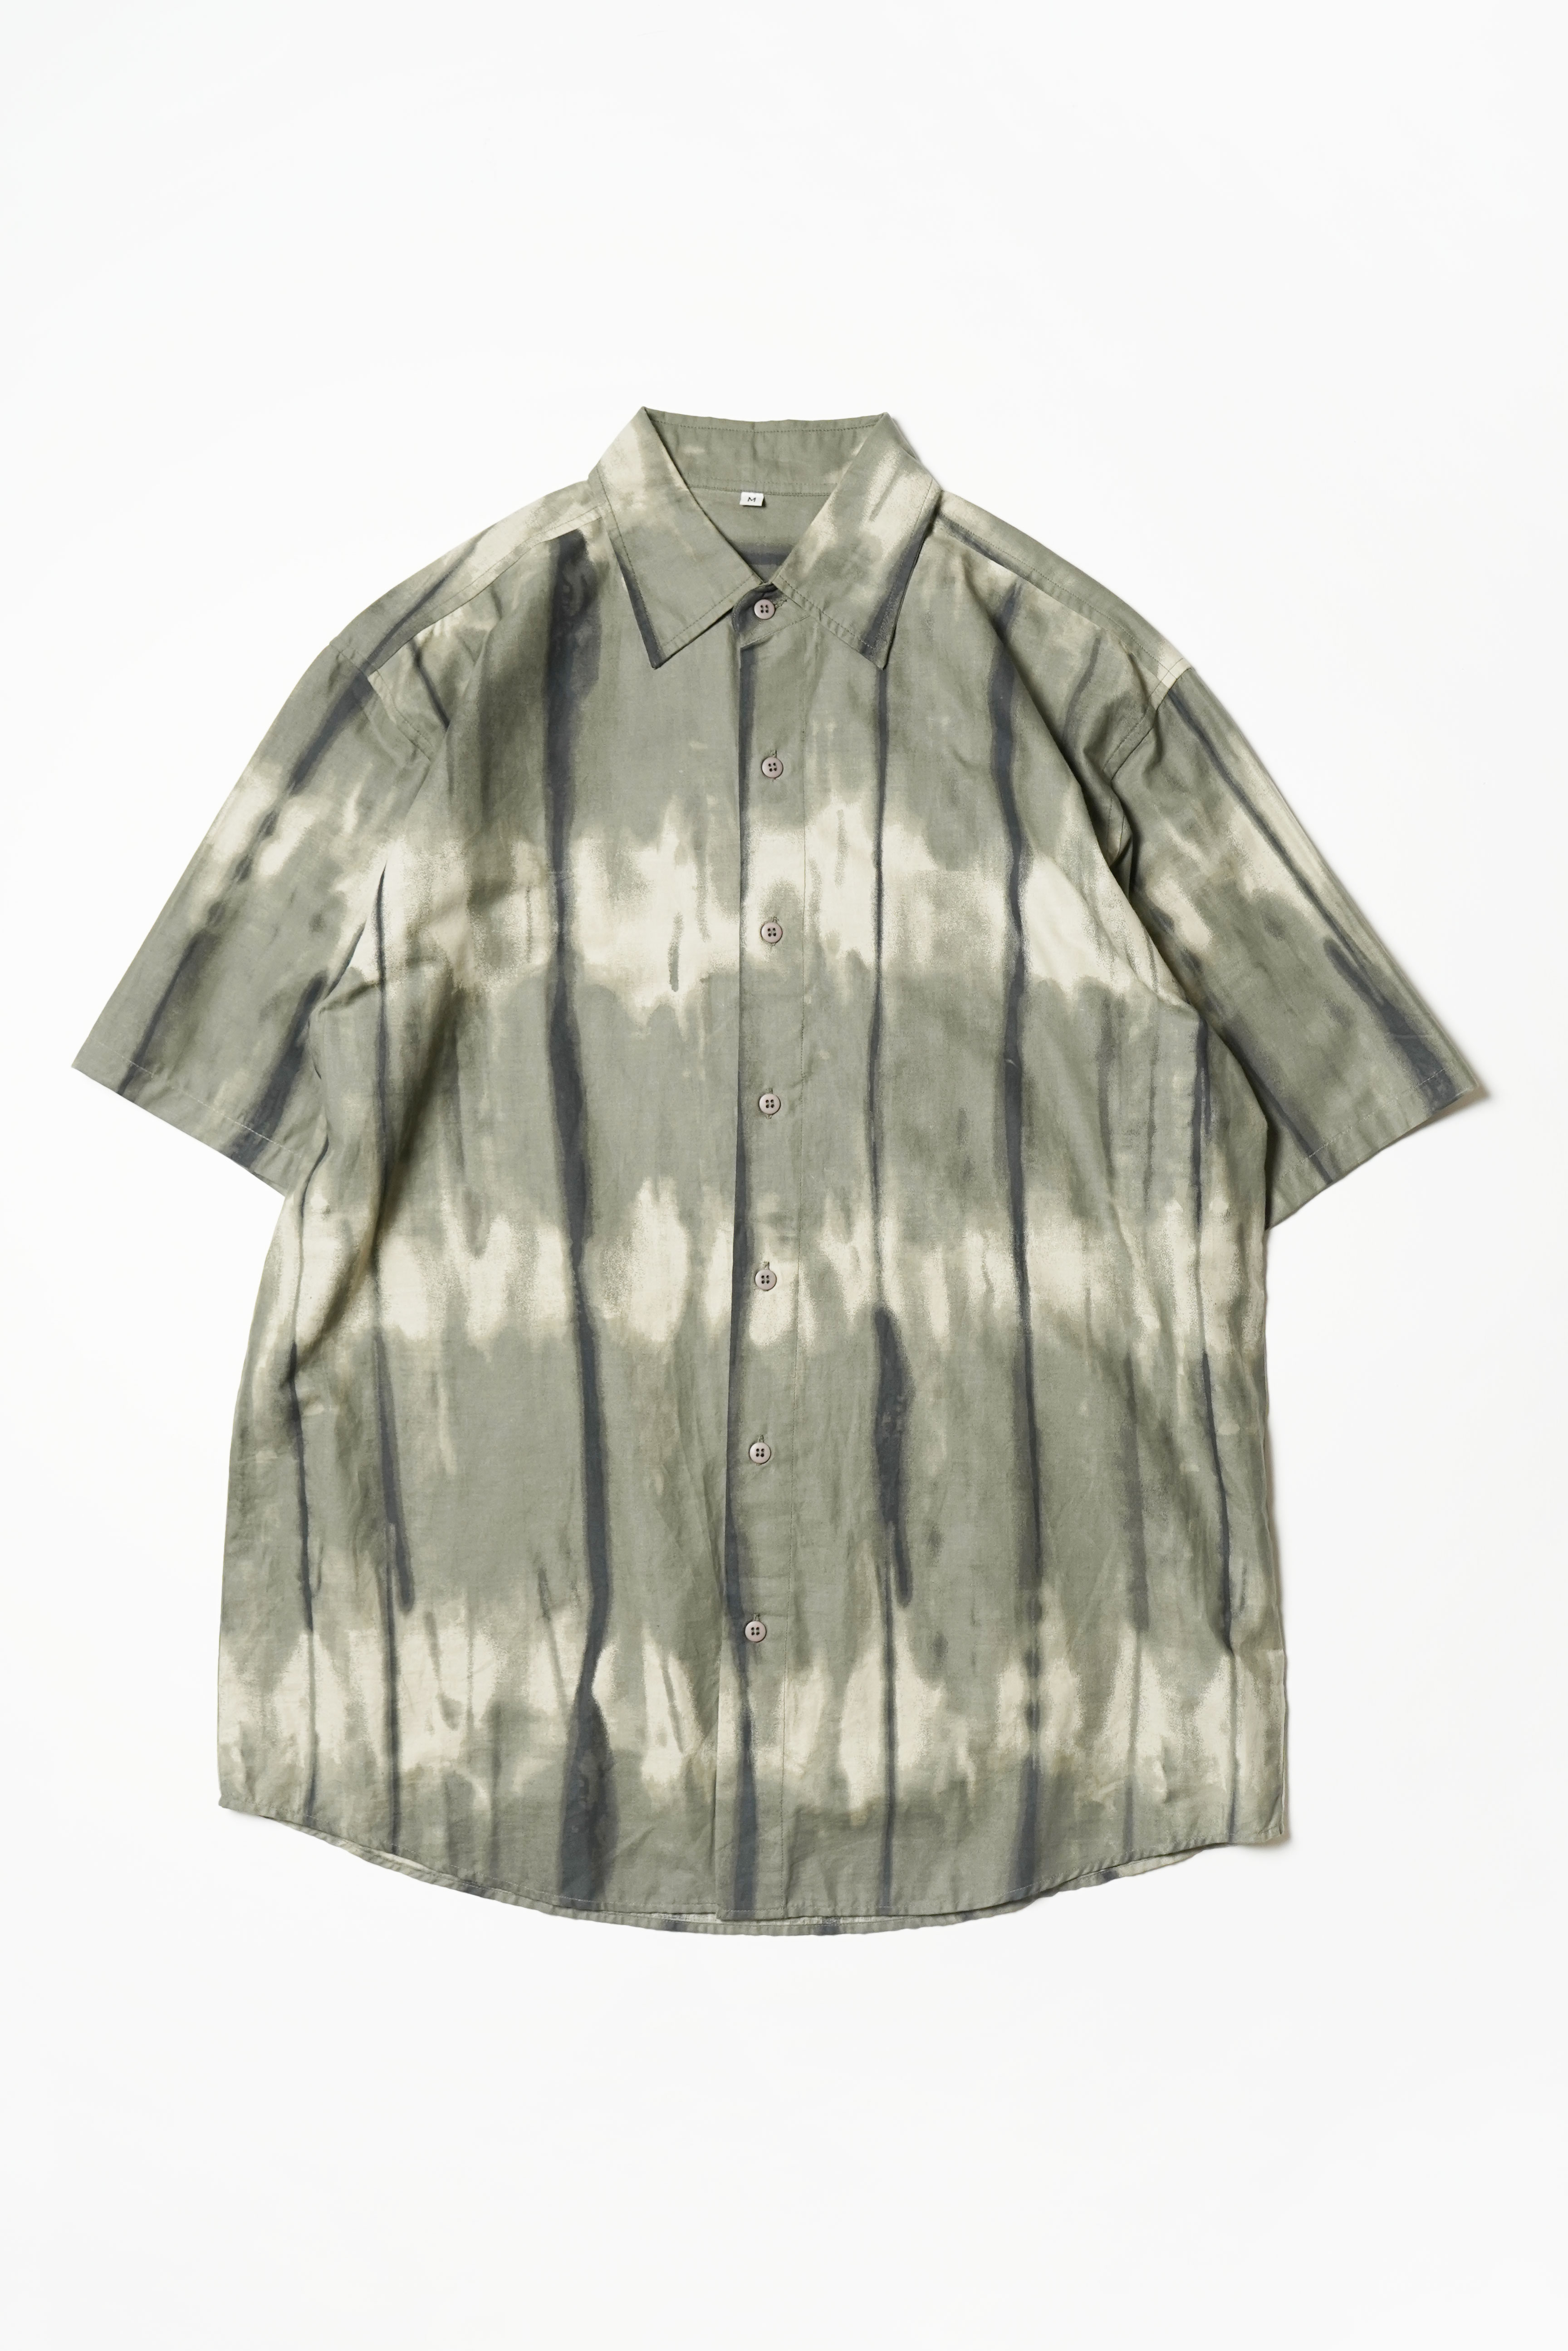 OVER DYE DESIGN S/S COTTON SHIRTS MADE IN NETHERLAND